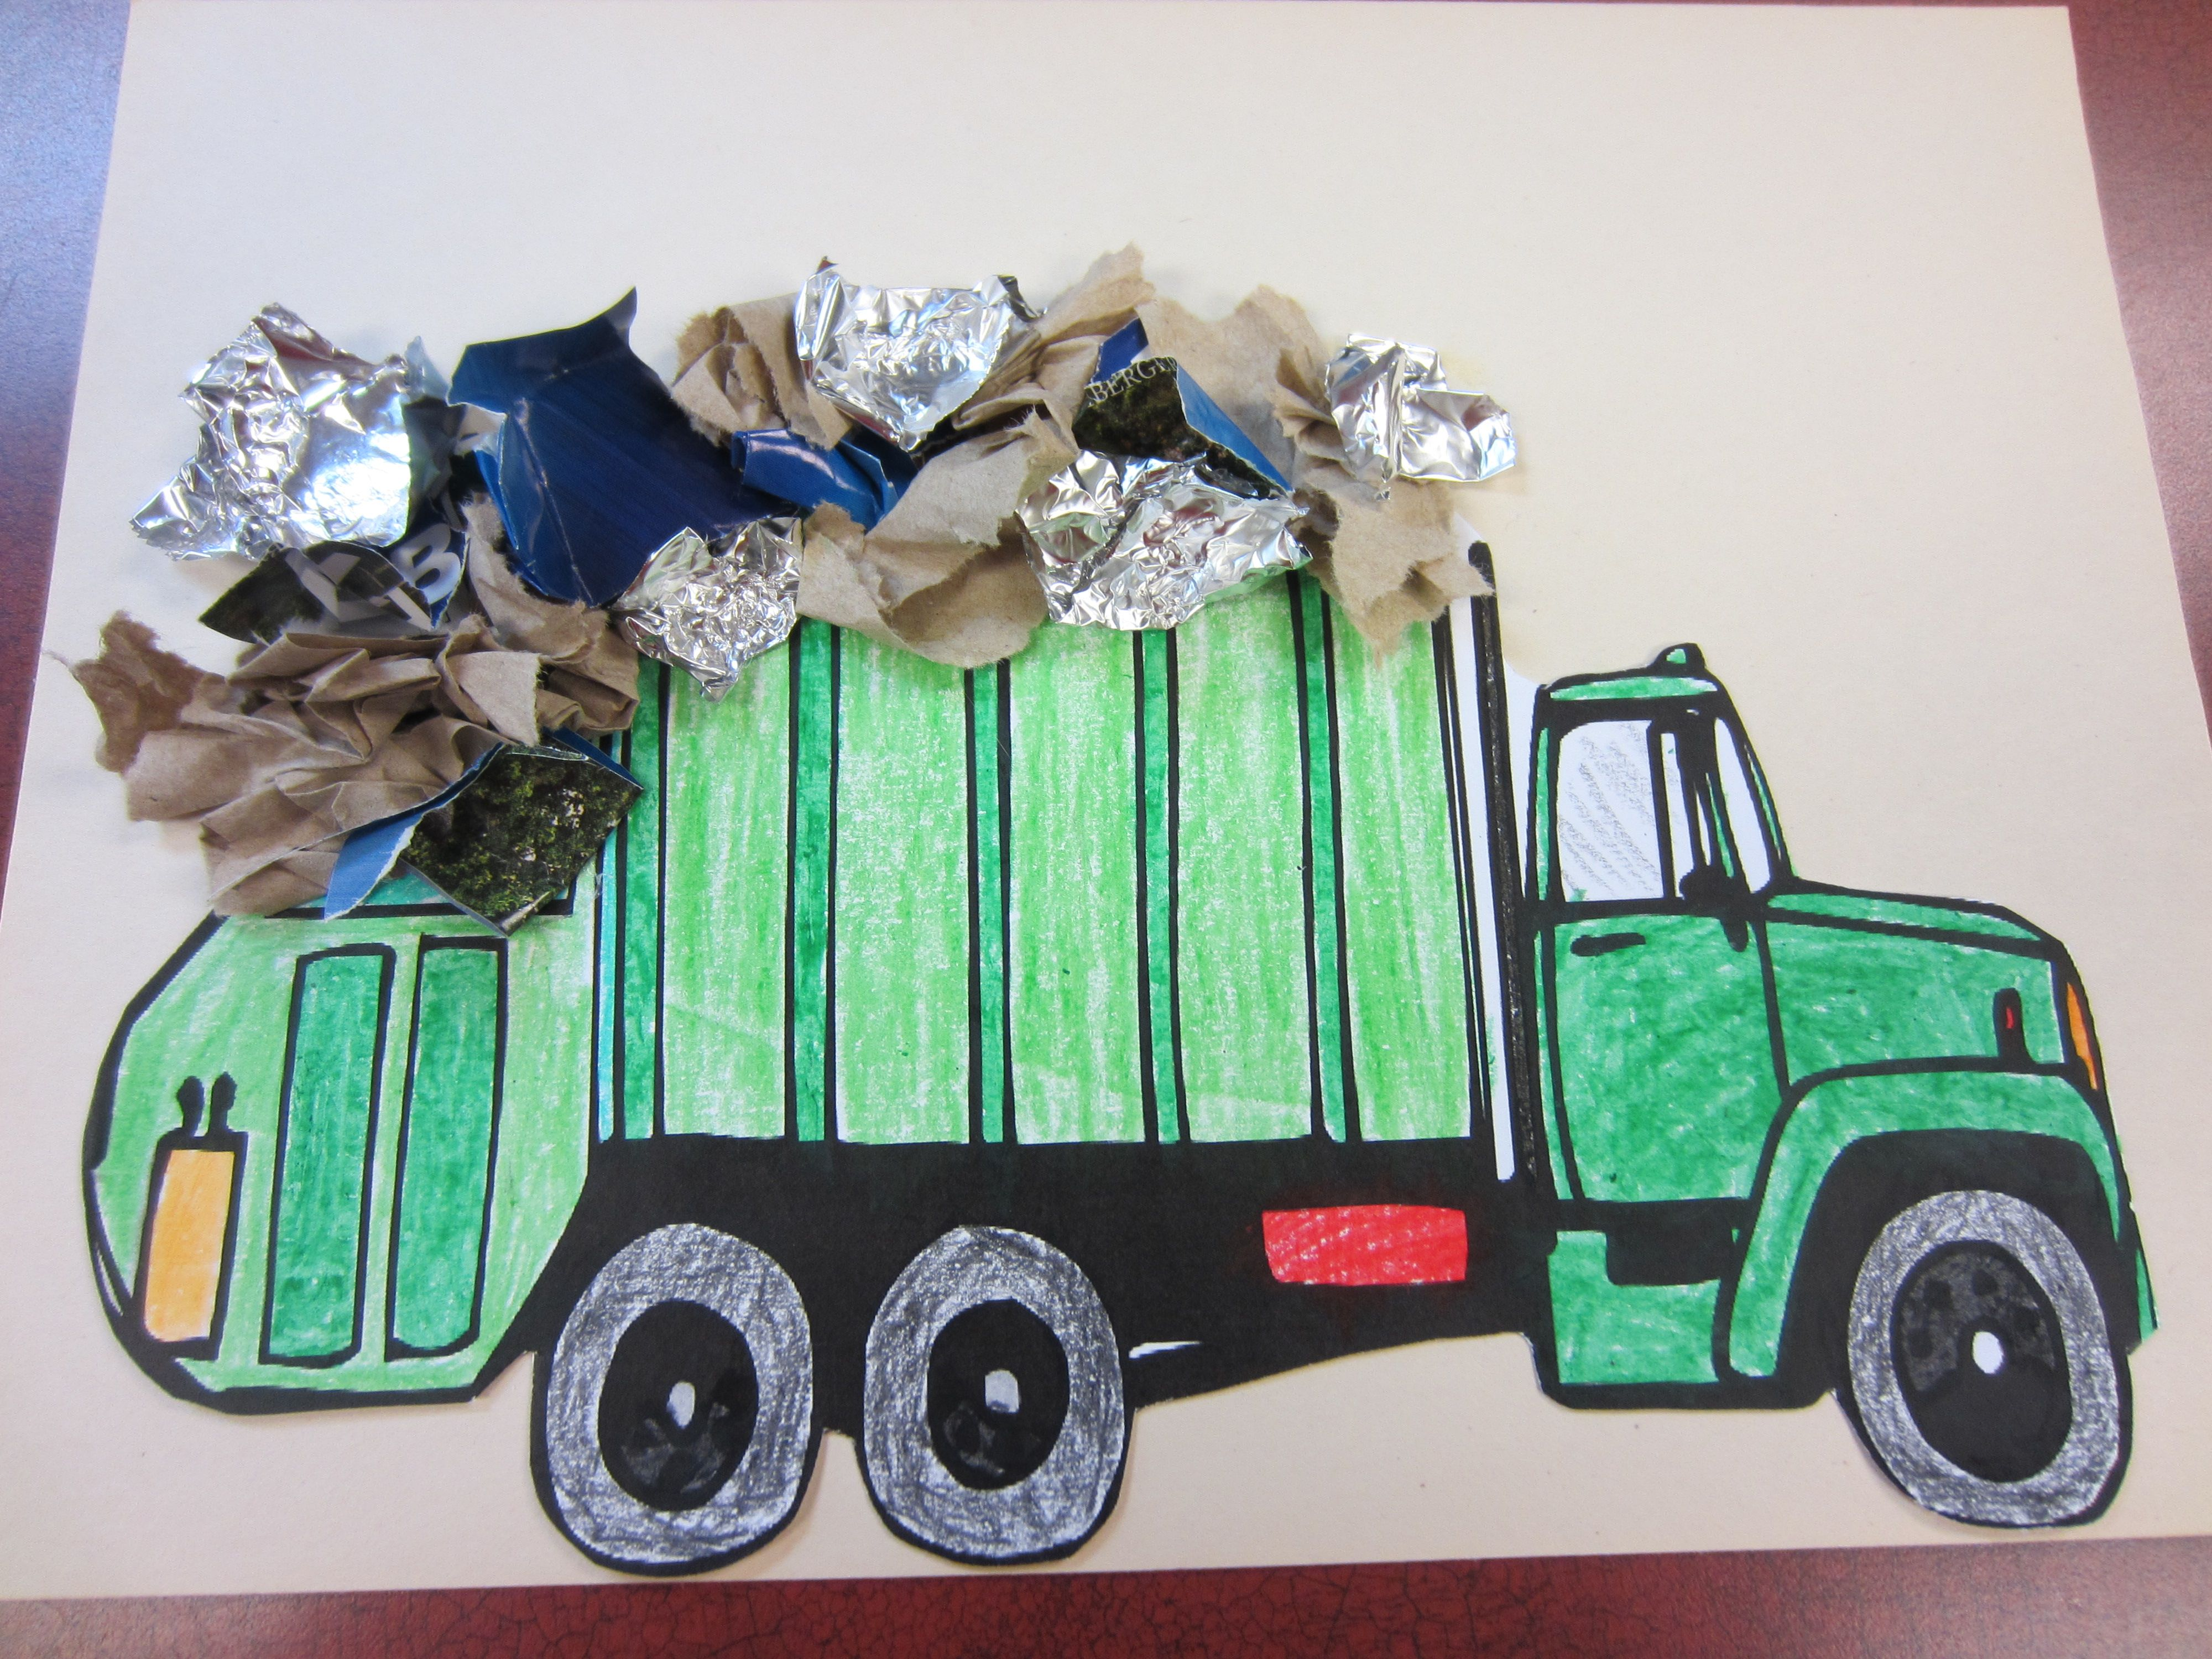 Garbage Truck We Printed A Picture Of A Garbage Truck On